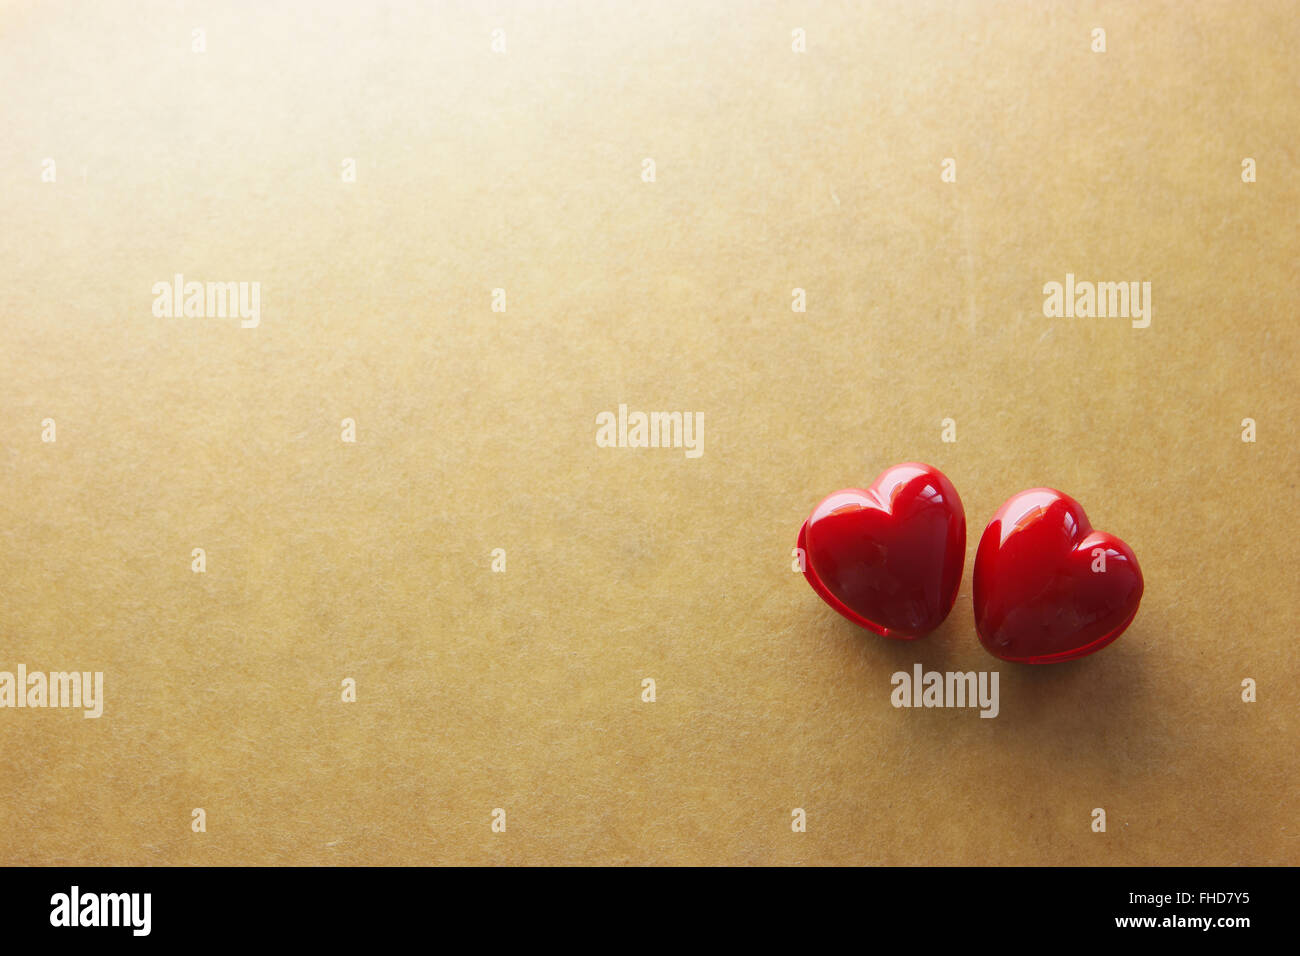 red heart on vintage paper - Stock Image